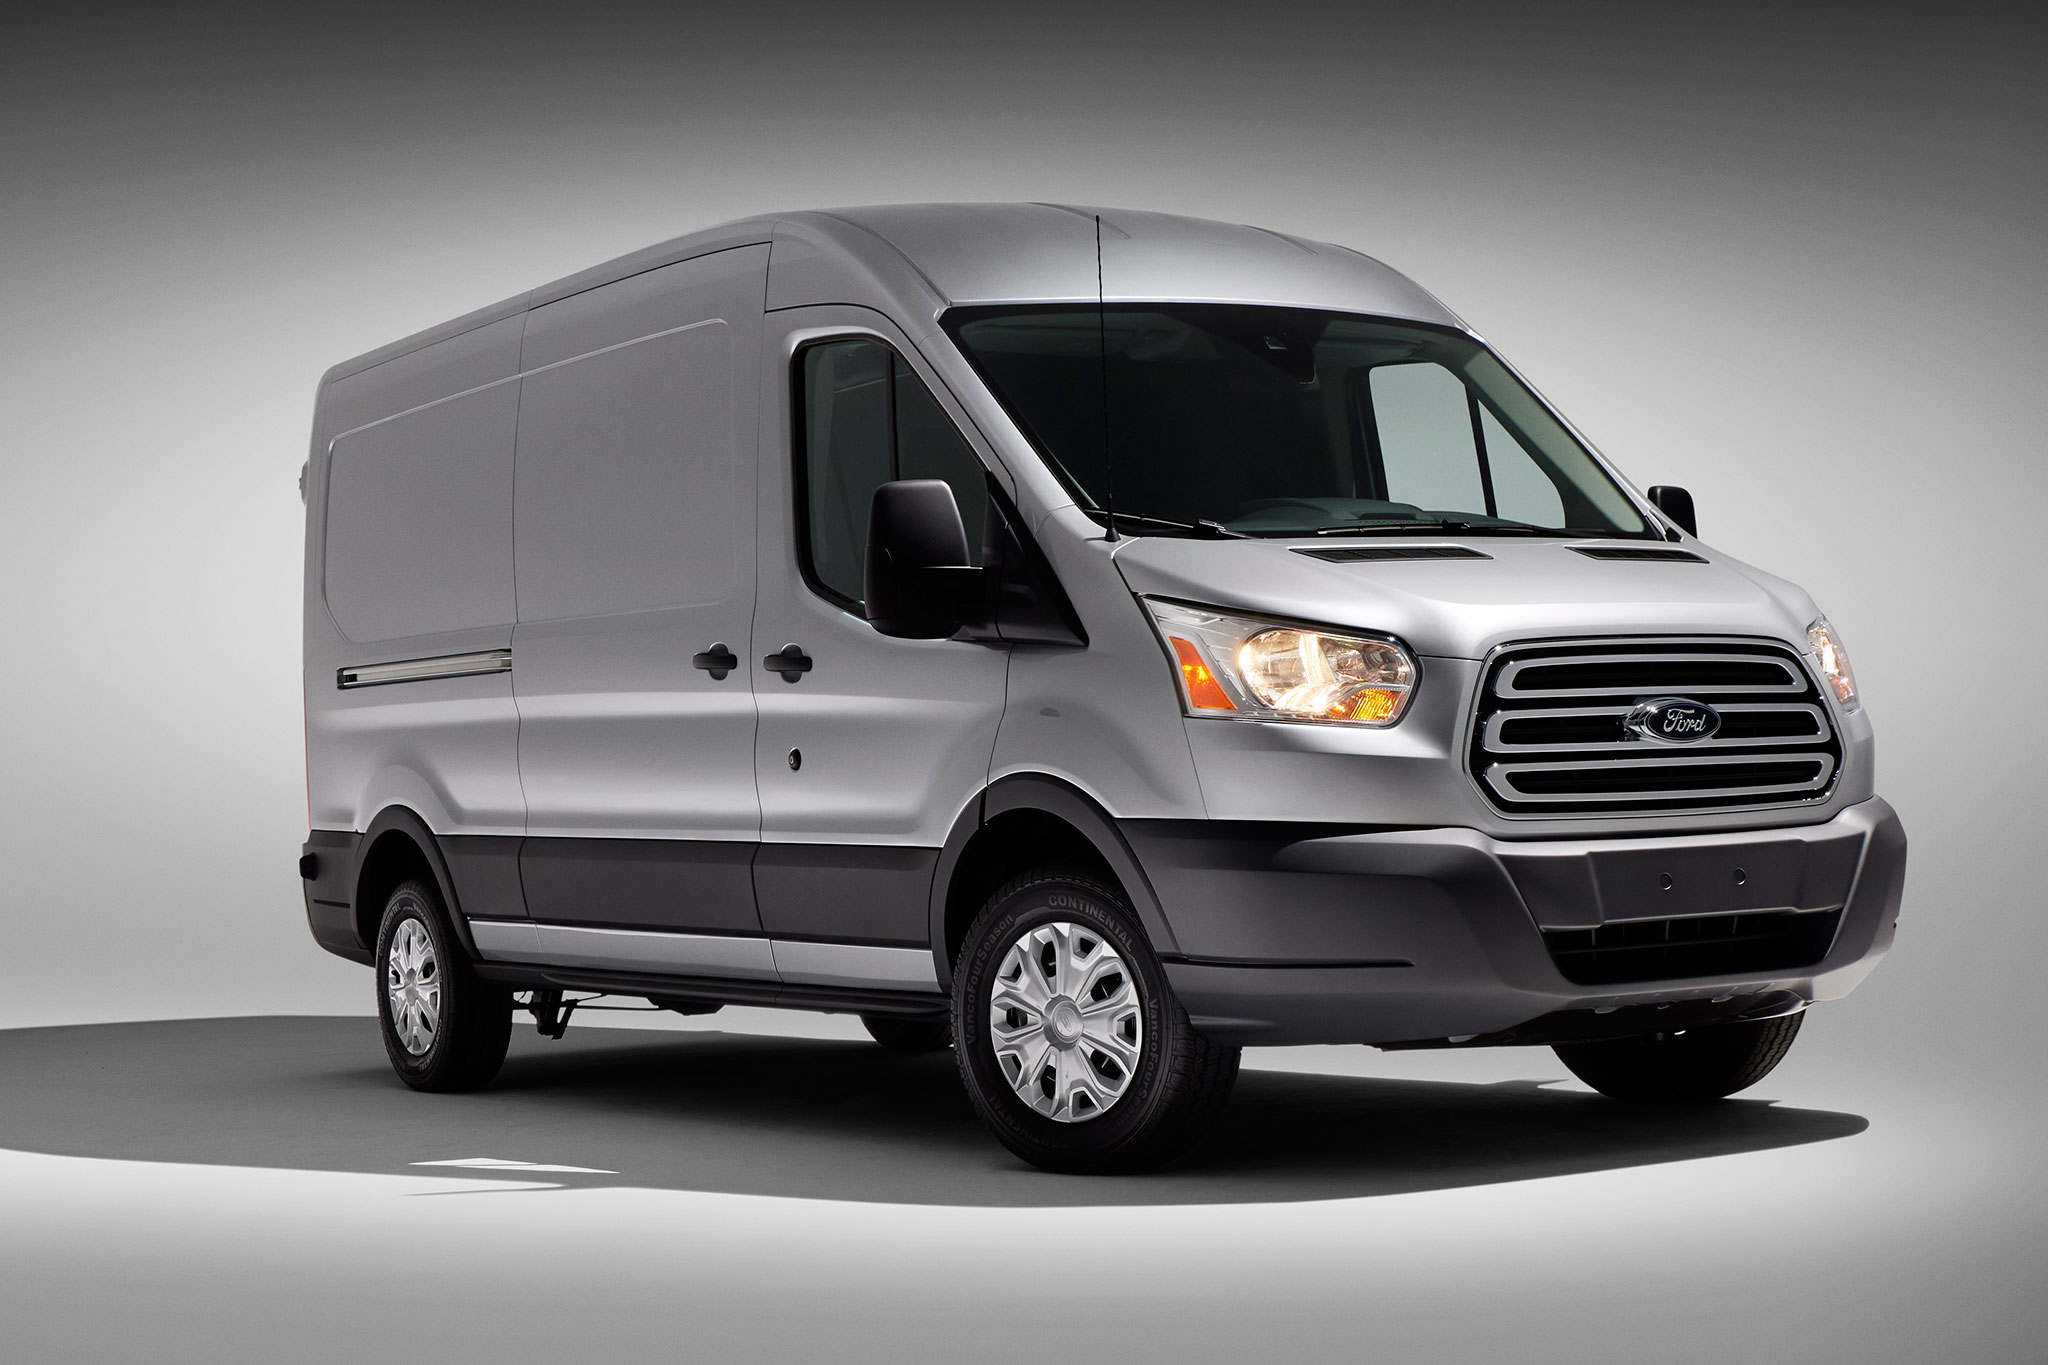 2014 Ford Transit Three Quarters View